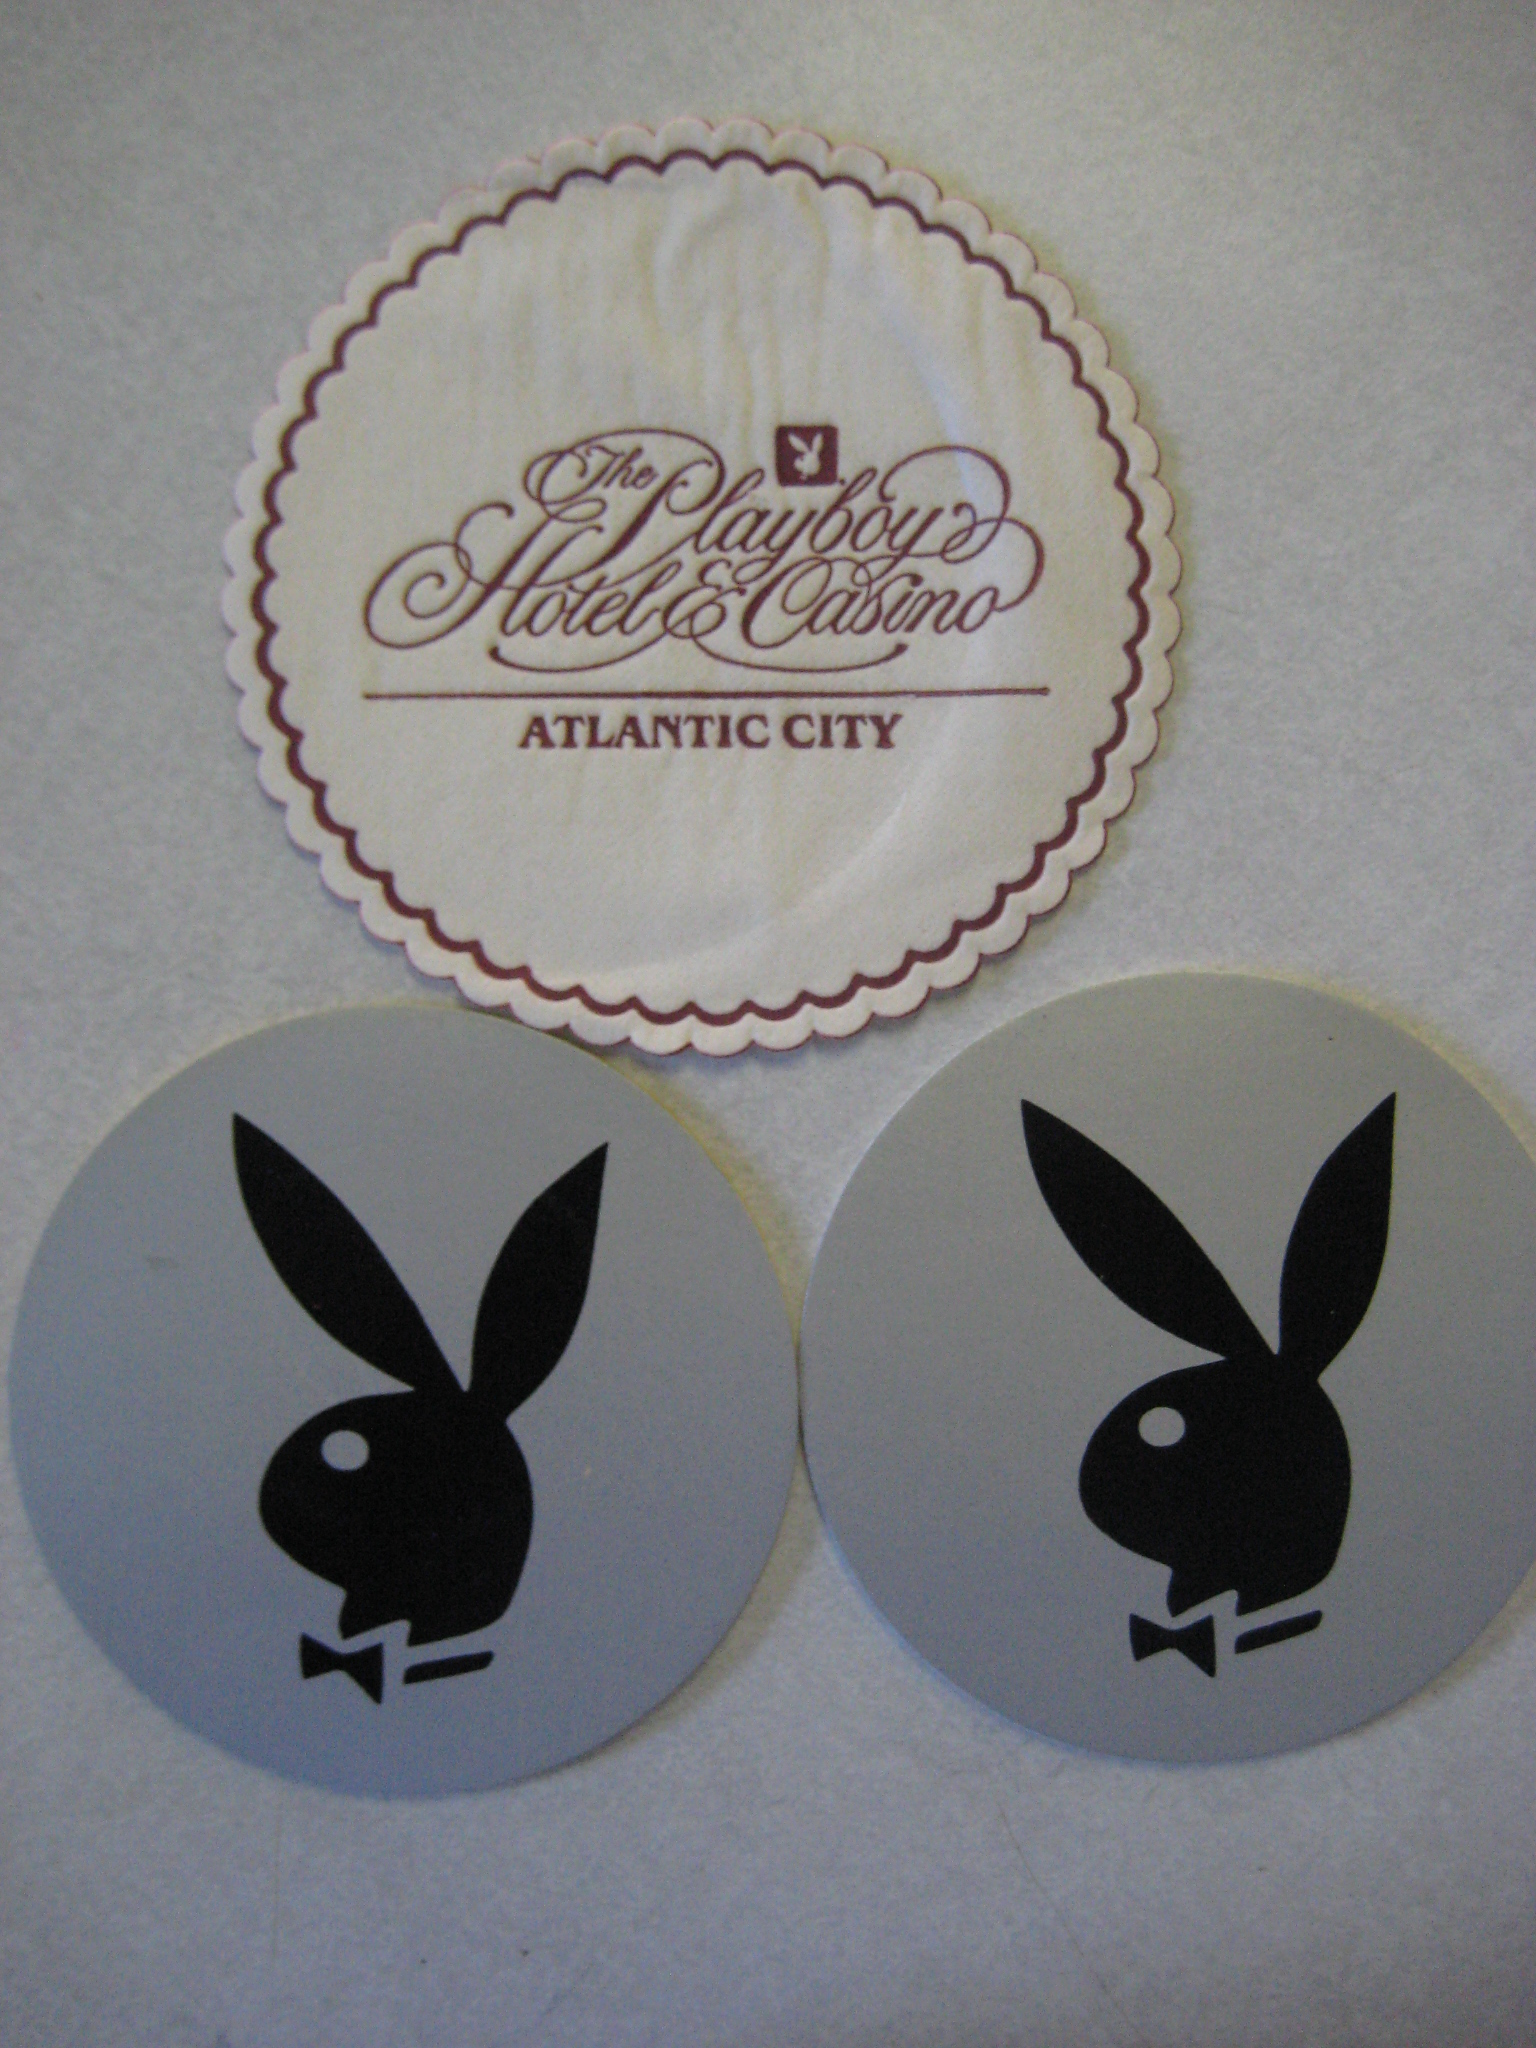 Playboy Hotel and Casino Atlantic City Coasters